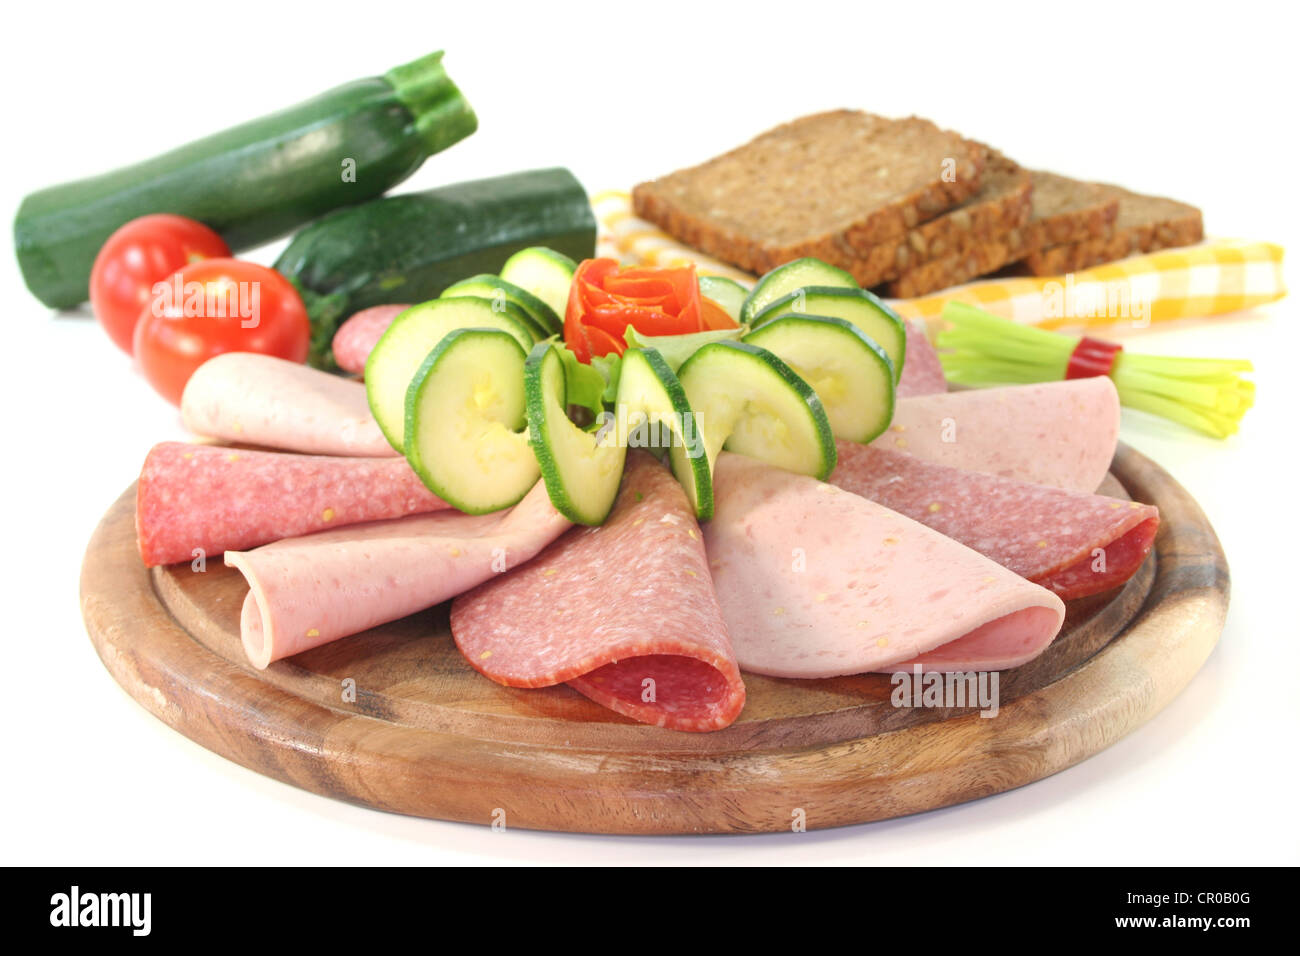 plate of fresh cold meats and vegetables Stock Photo